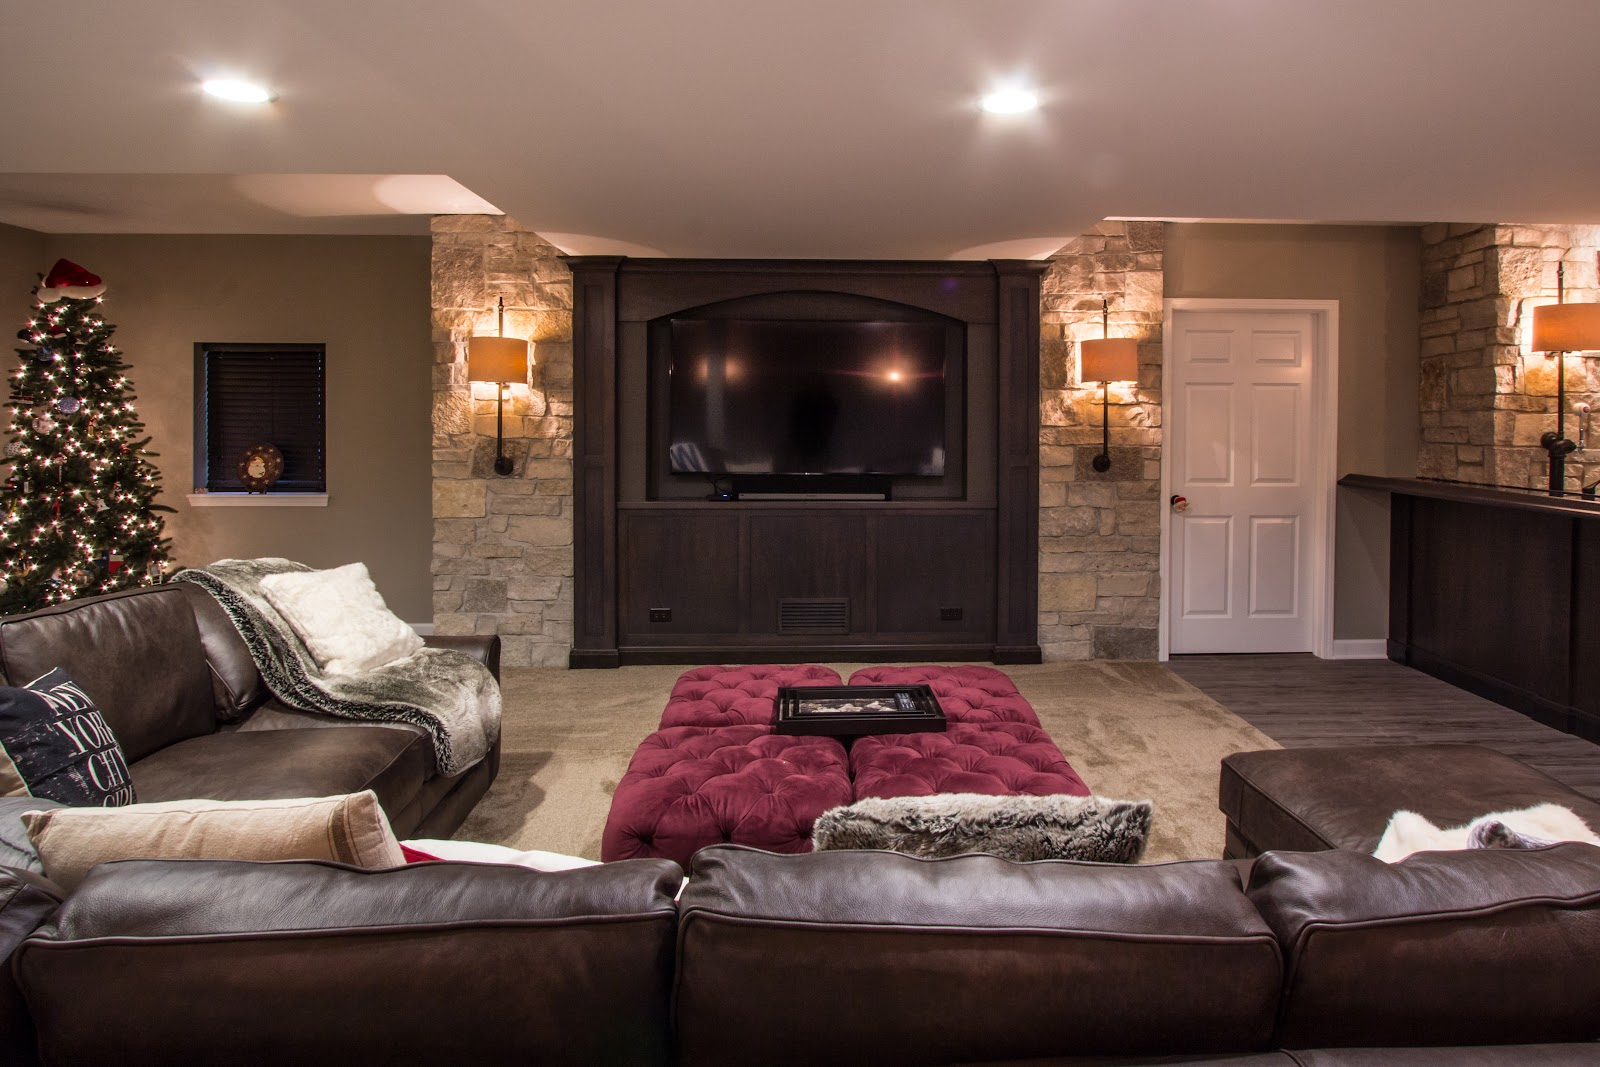 Basement media room with large wood and stone built-in TV, leather sectional and velveteen tufted ottomans.